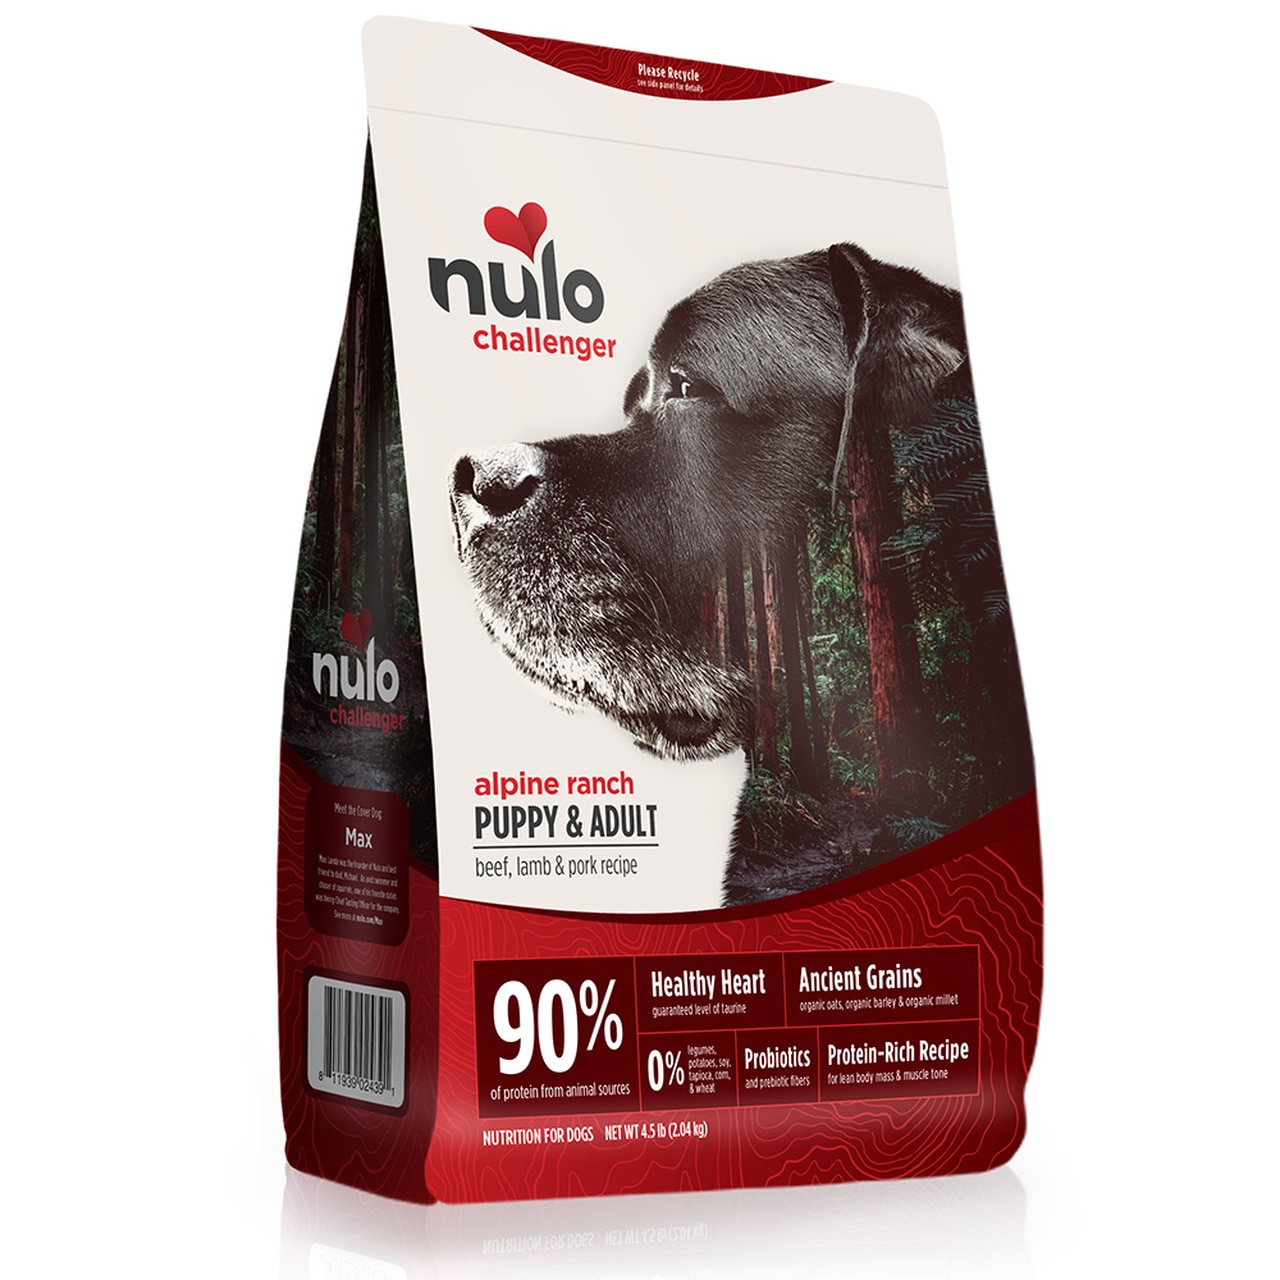 Nulo Challenger Alpine Ranch Beef, Lamb & Pork Puppy & Adult Dry Dog Food, 24-lb